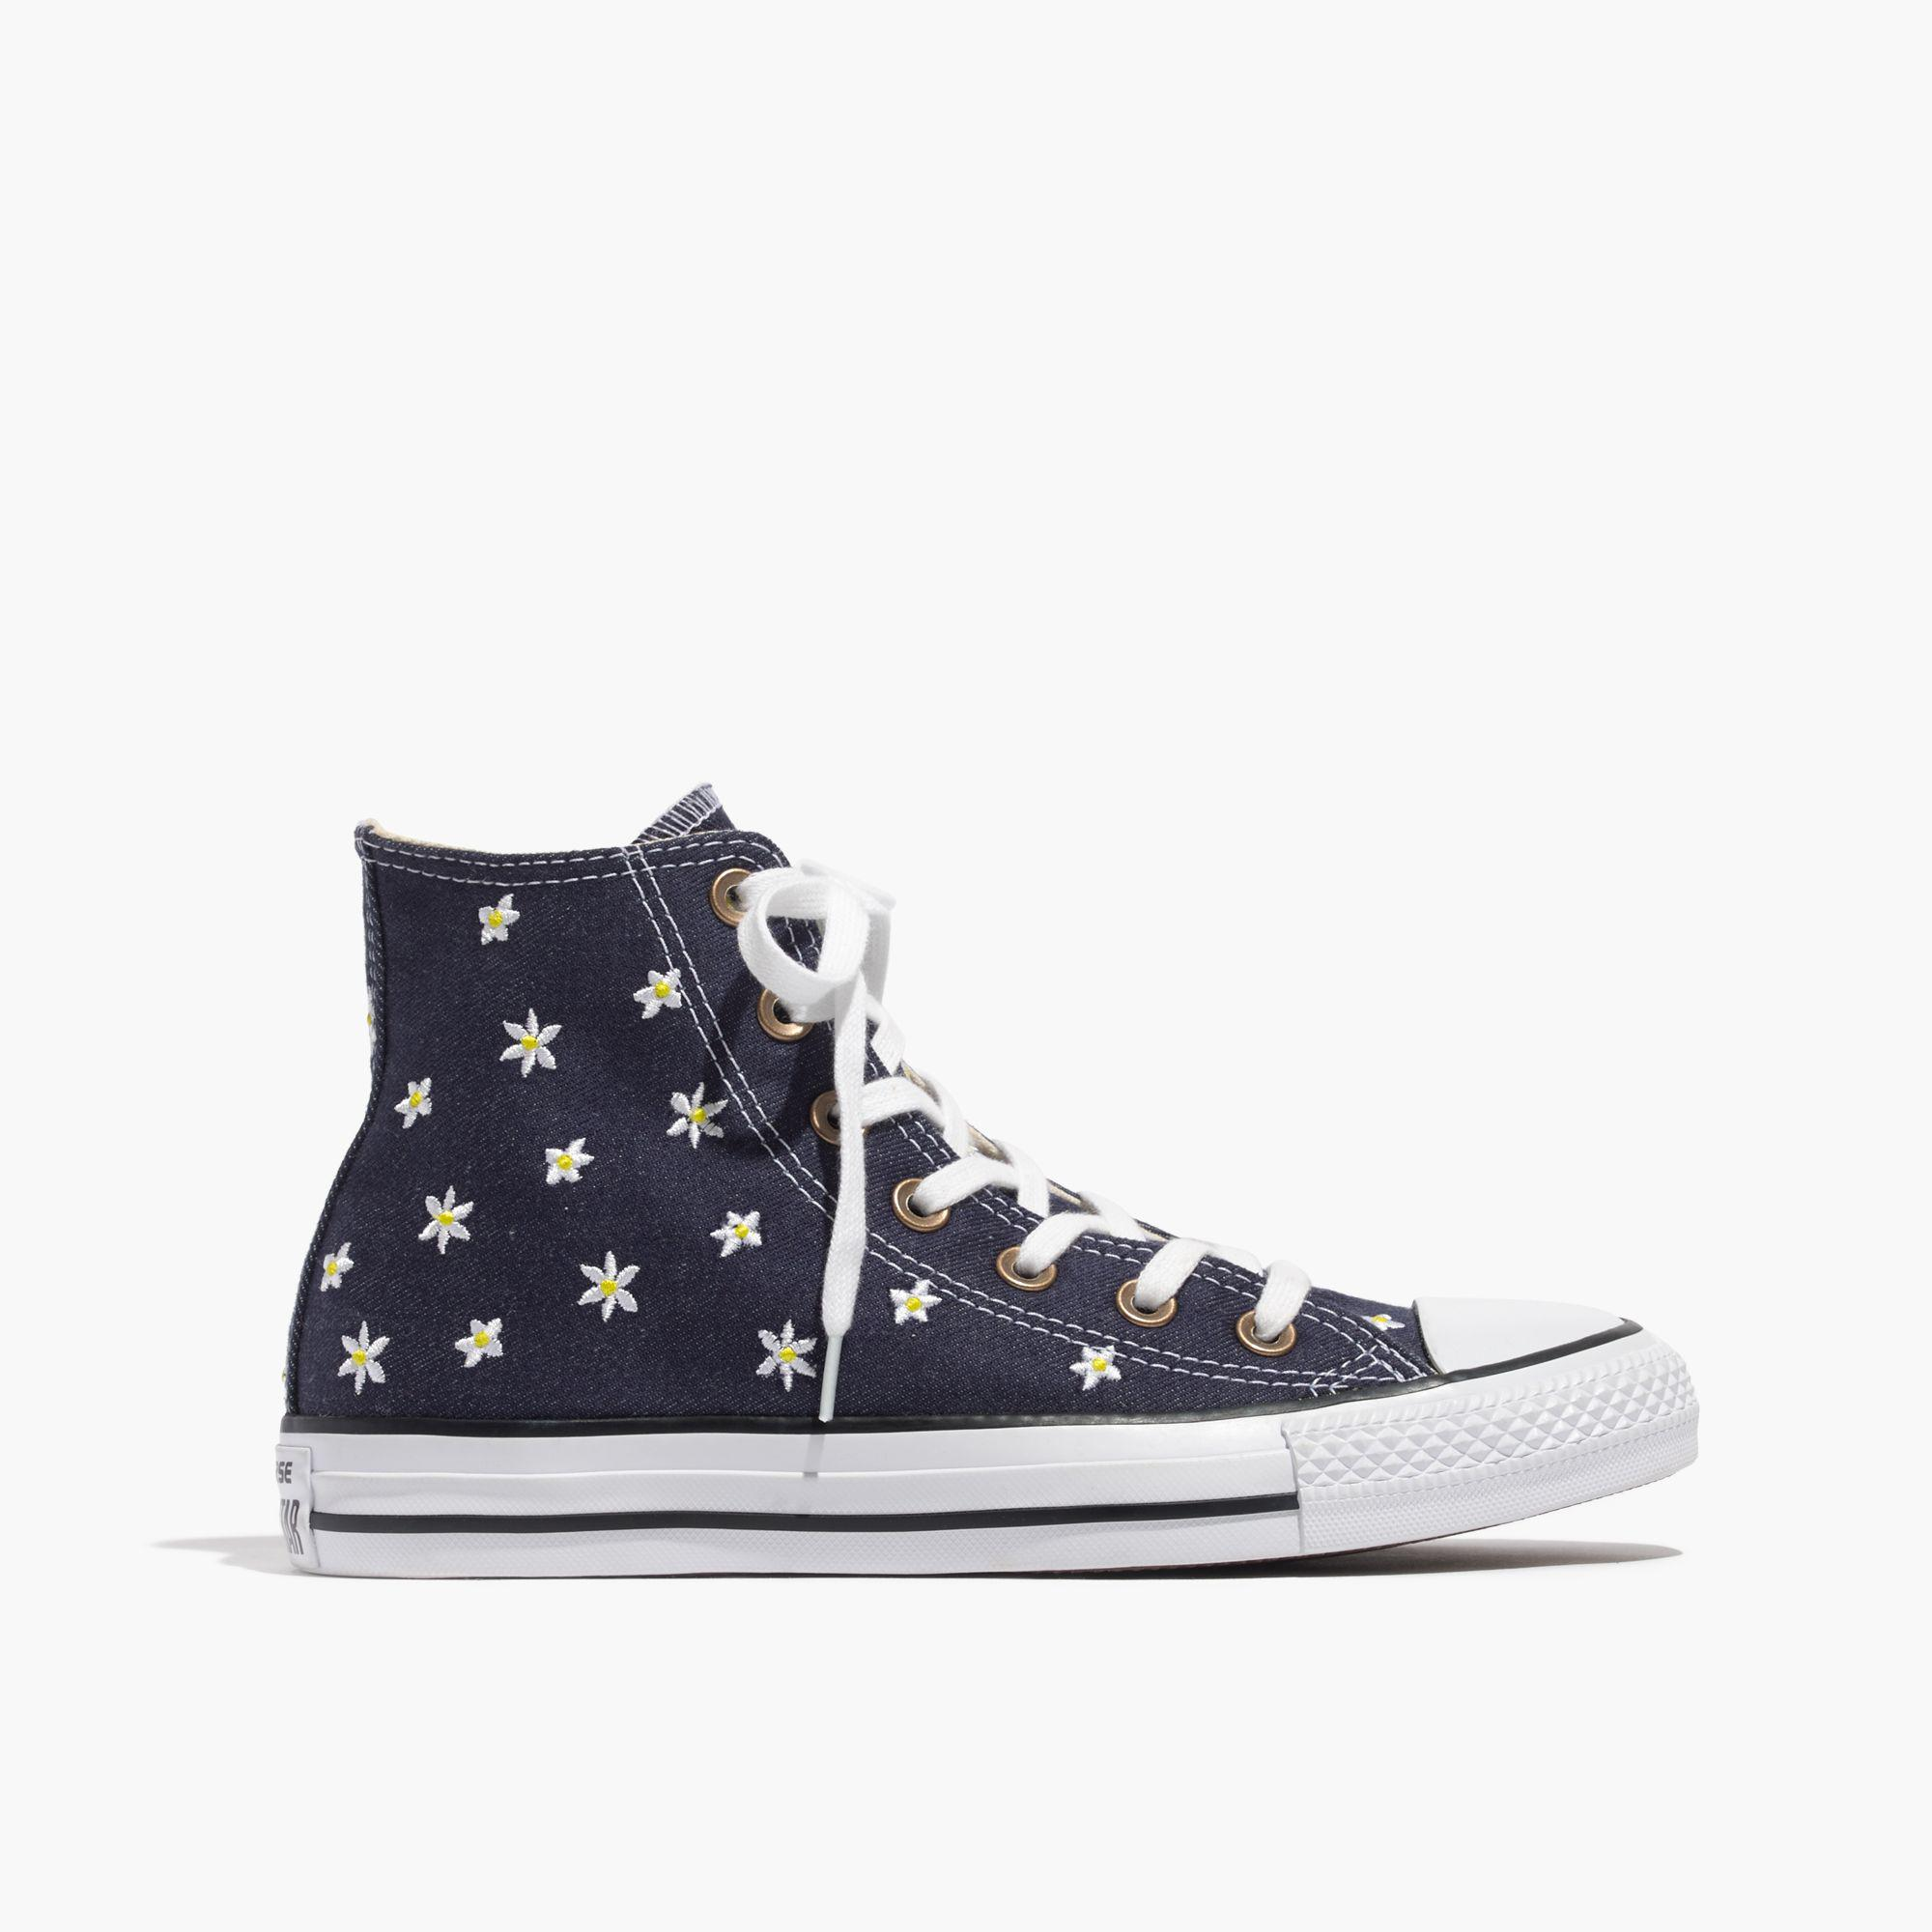 6e5cb13674d7c8 Lyst - Madewell Converse® Chuck Taylor All Star High-top Sneakers In ...